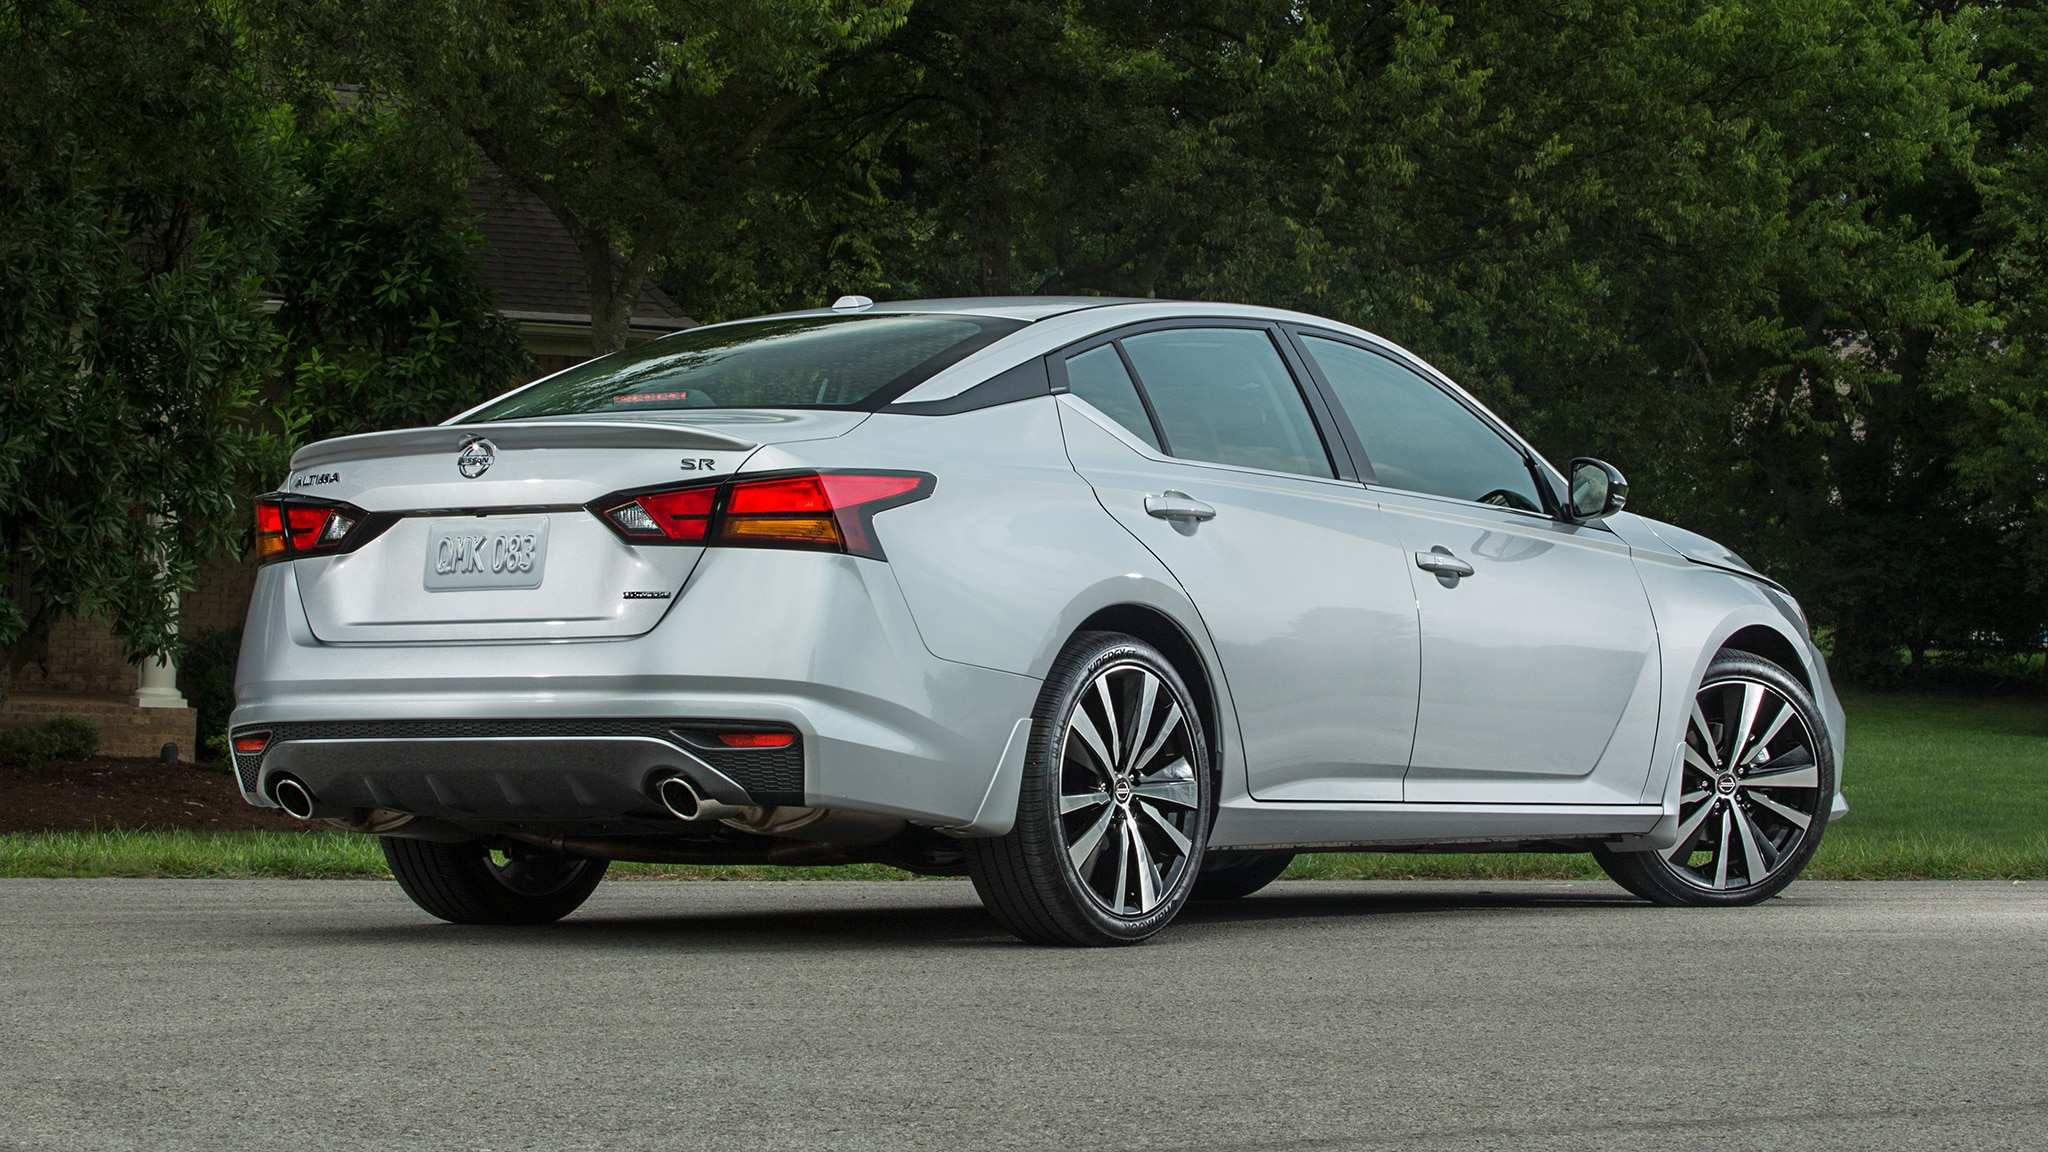 83 The Best 2019 Nissan Altima Picture